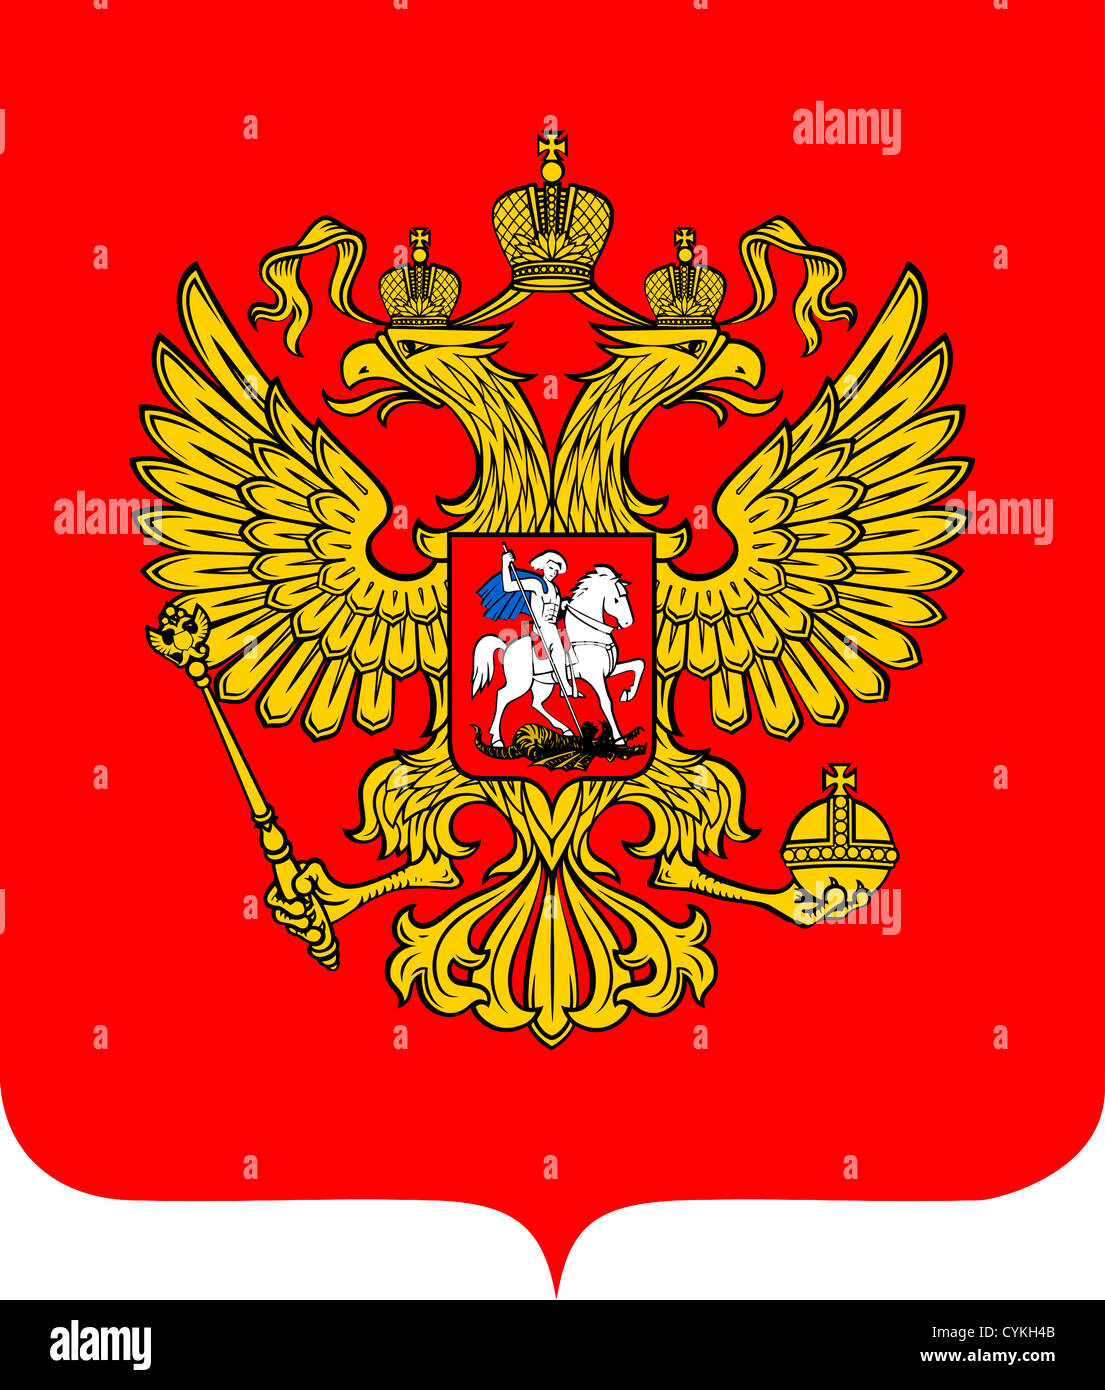 National coat of arms of the Russian Federation. - Stock Image